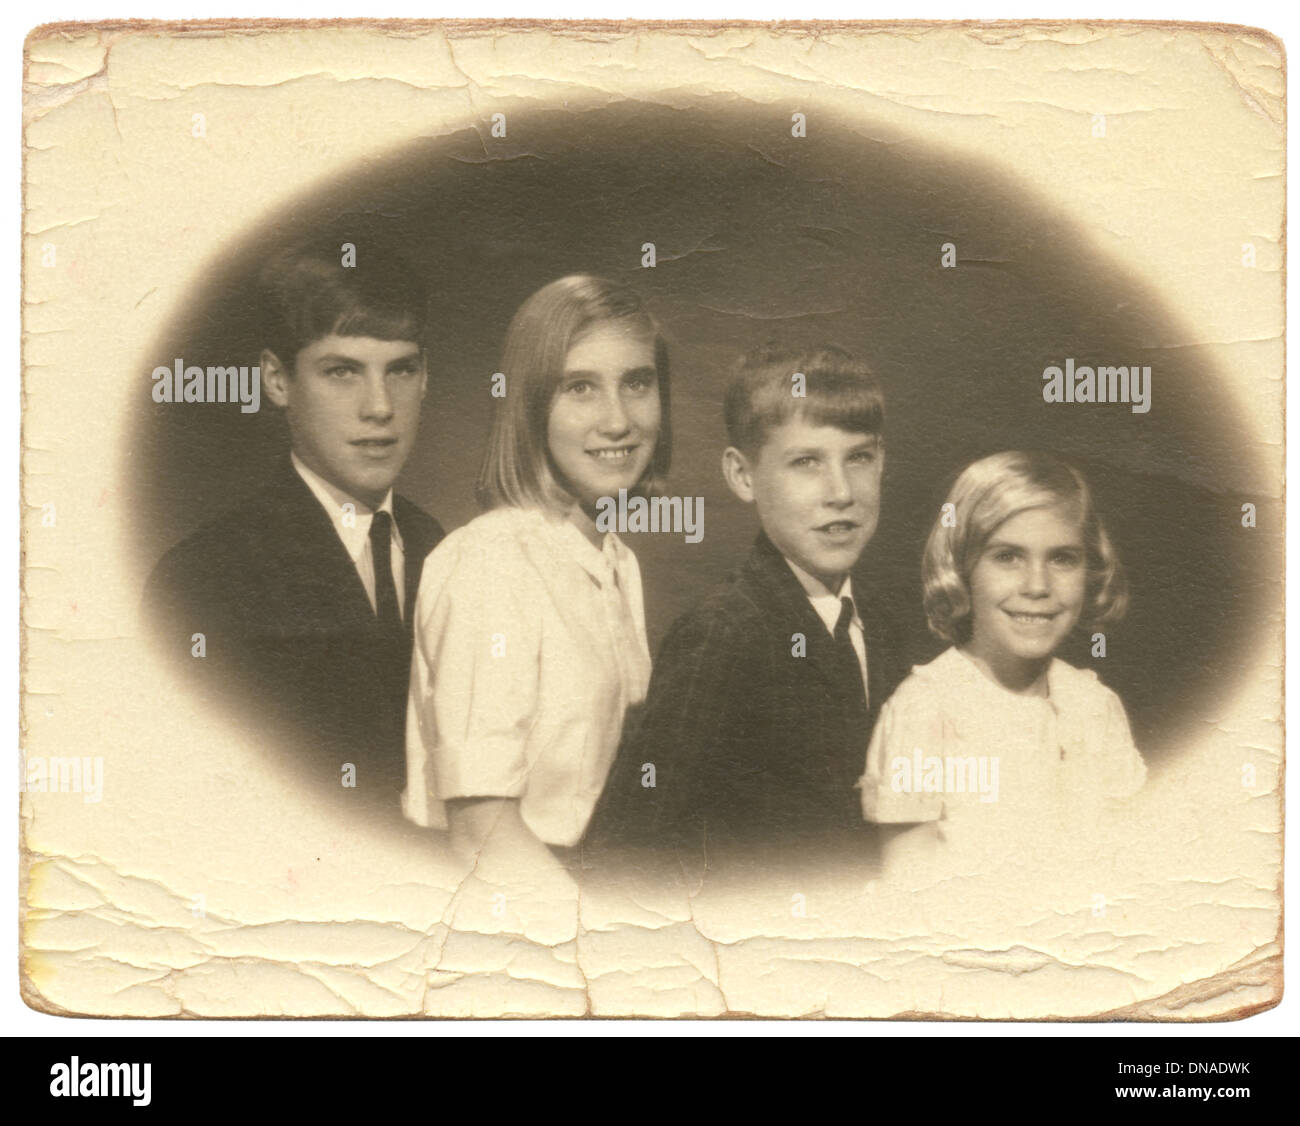 Family Portrait, Two Brothers and Two Sisters, Circa 1960's - Stock Image